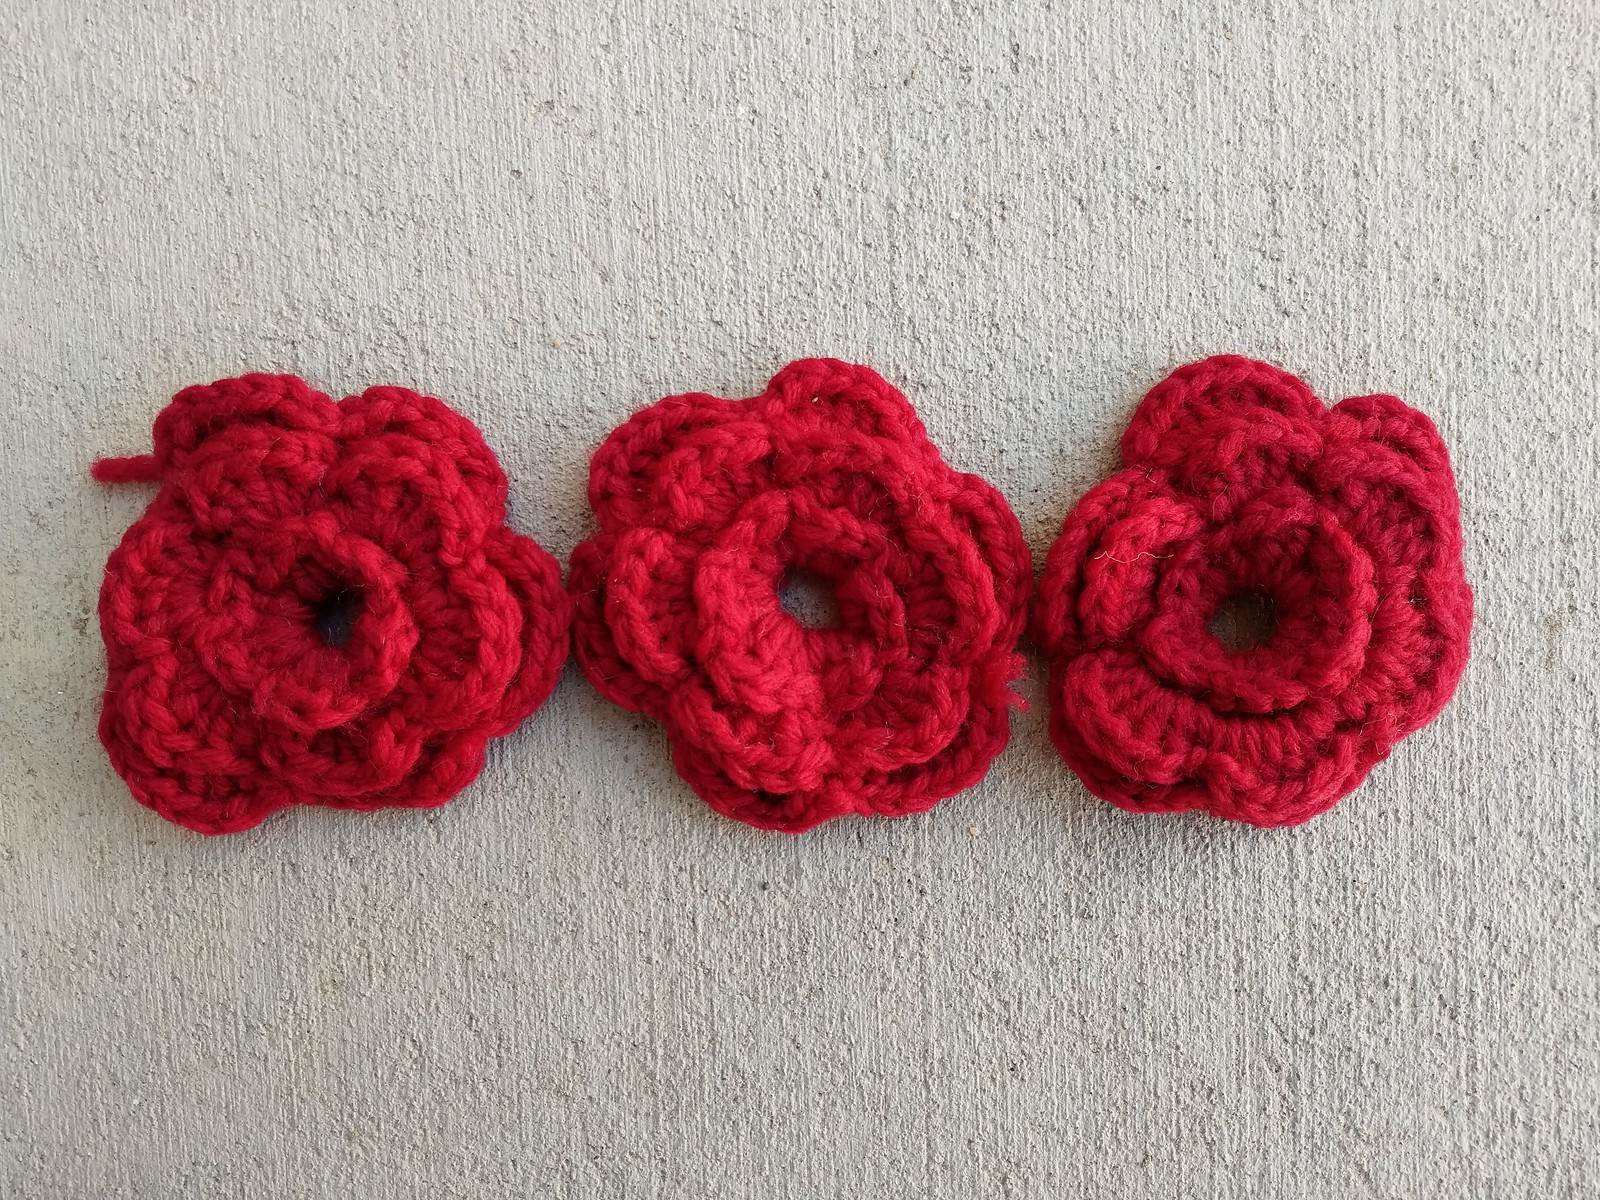 Three red crochet flowers